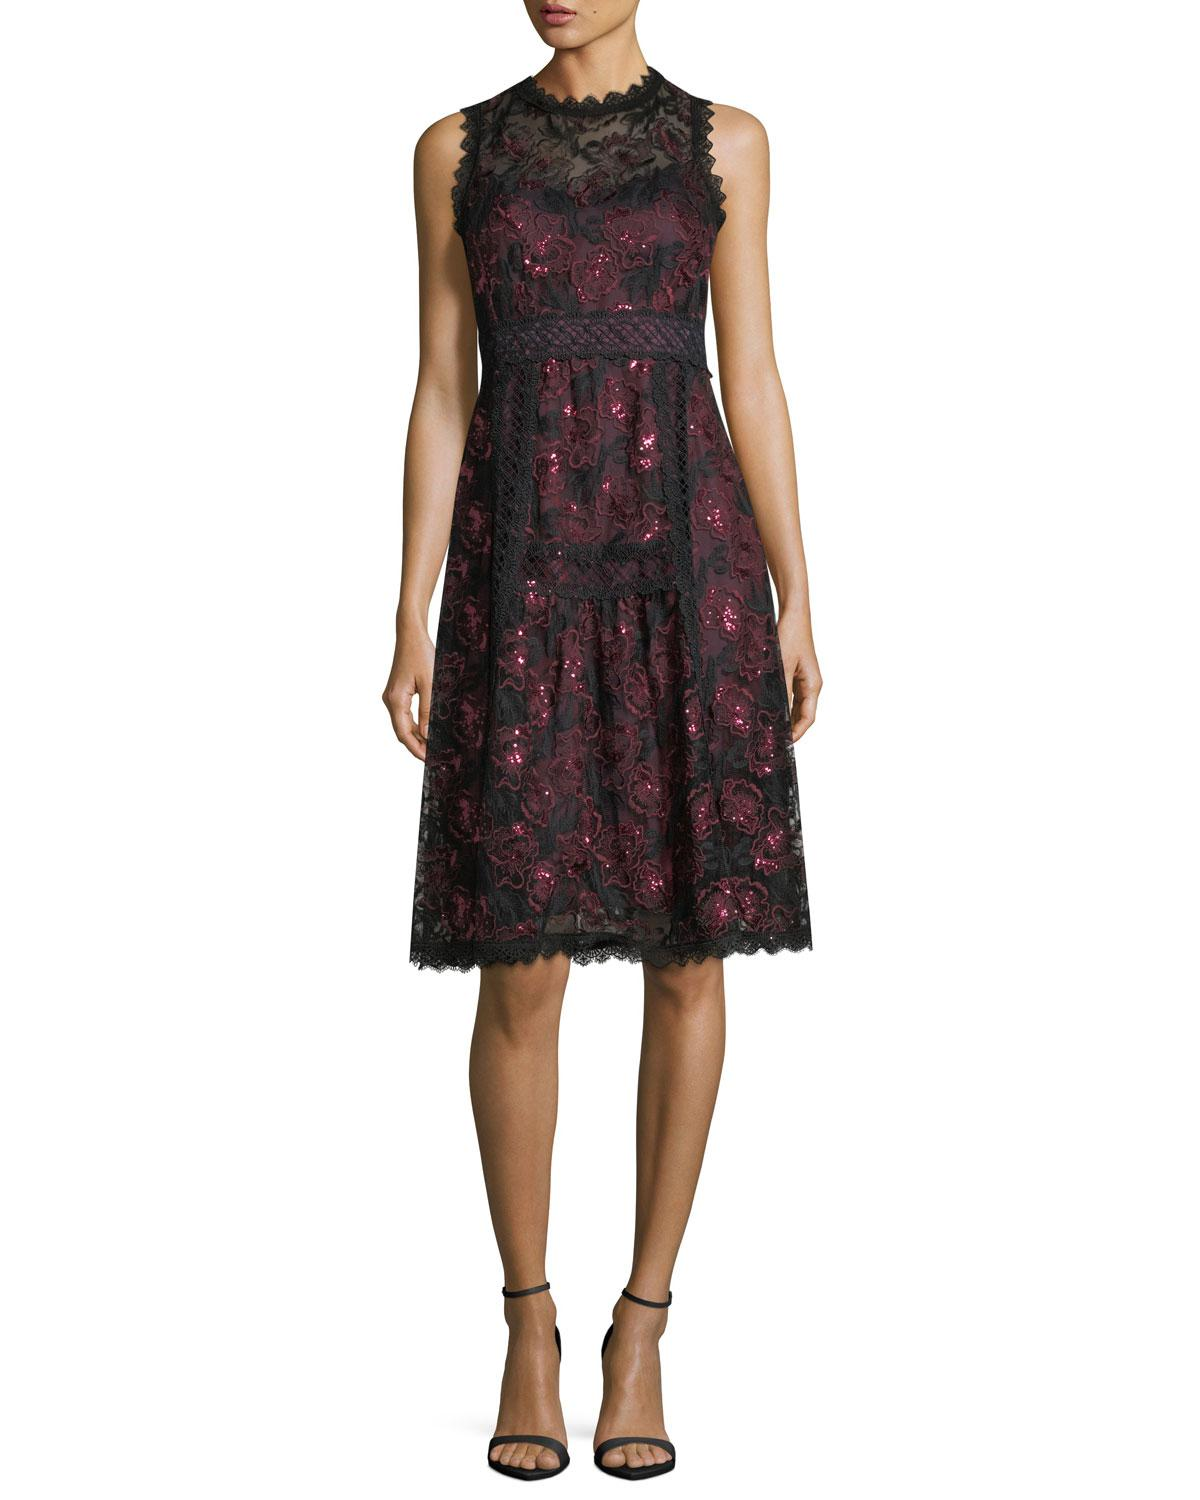 5ceb3cab7b6bc Maroon Lace Cocktail Dress - raveitsafe